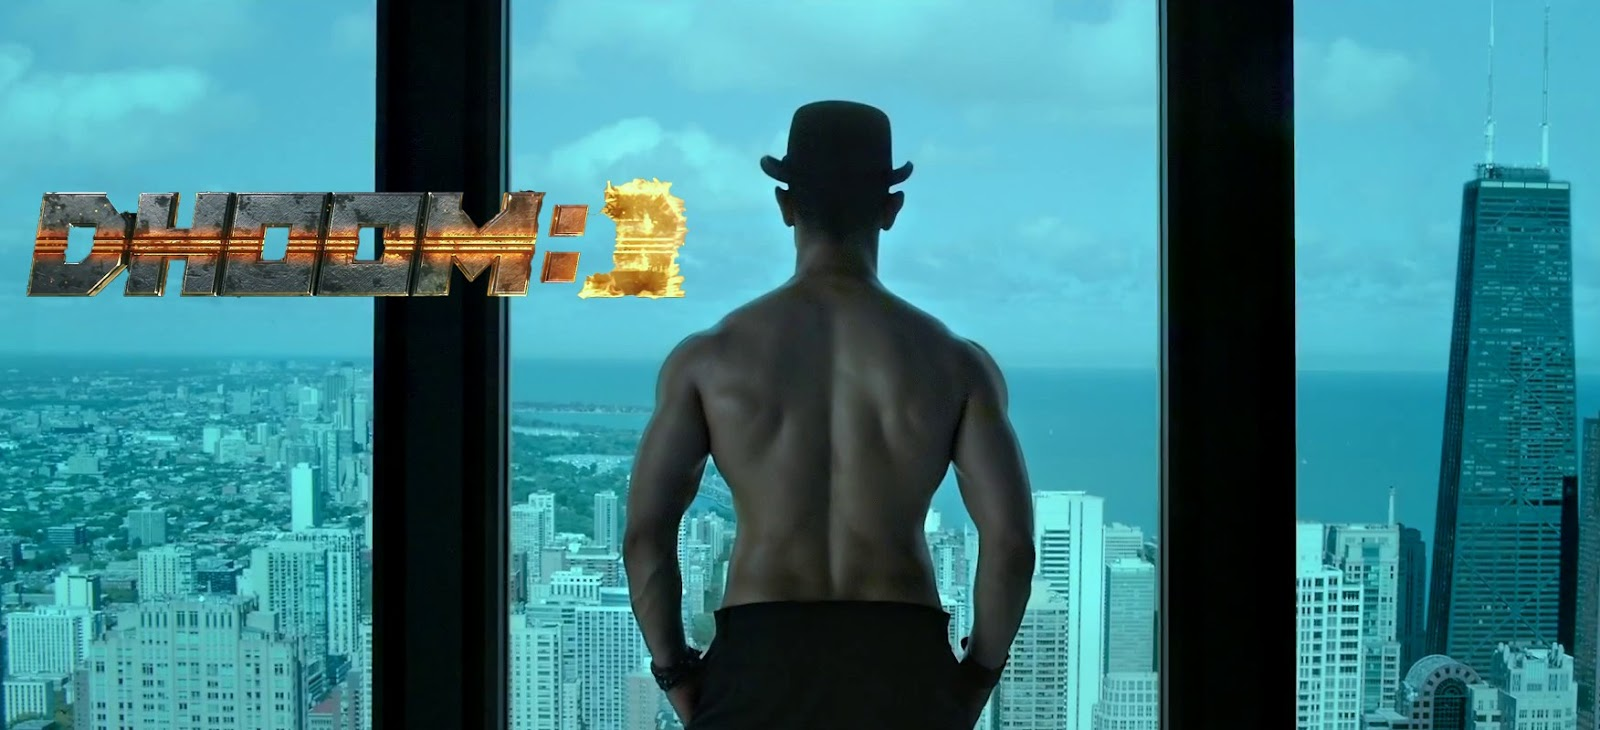 Dhoom 3 Wallpapers  Aamir Khan In Dhoom 3  Katrina Kaif In Dhoom 3    Aamir Khan In Dhoom 3 Sets